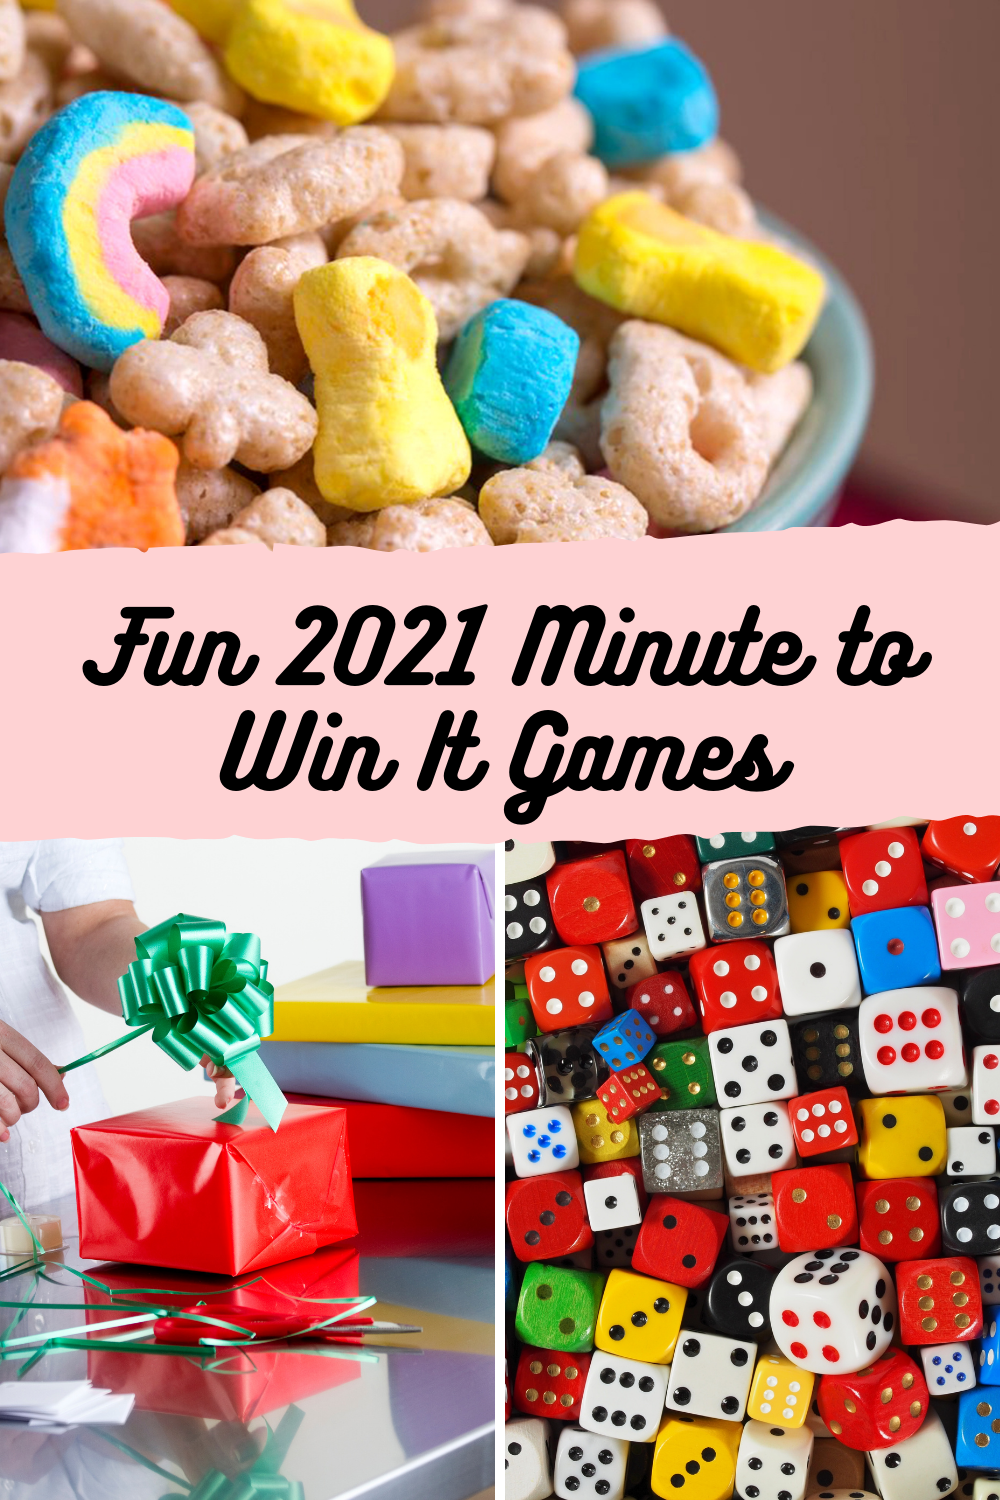 Fun Minute to Win It Games To Play In 2021